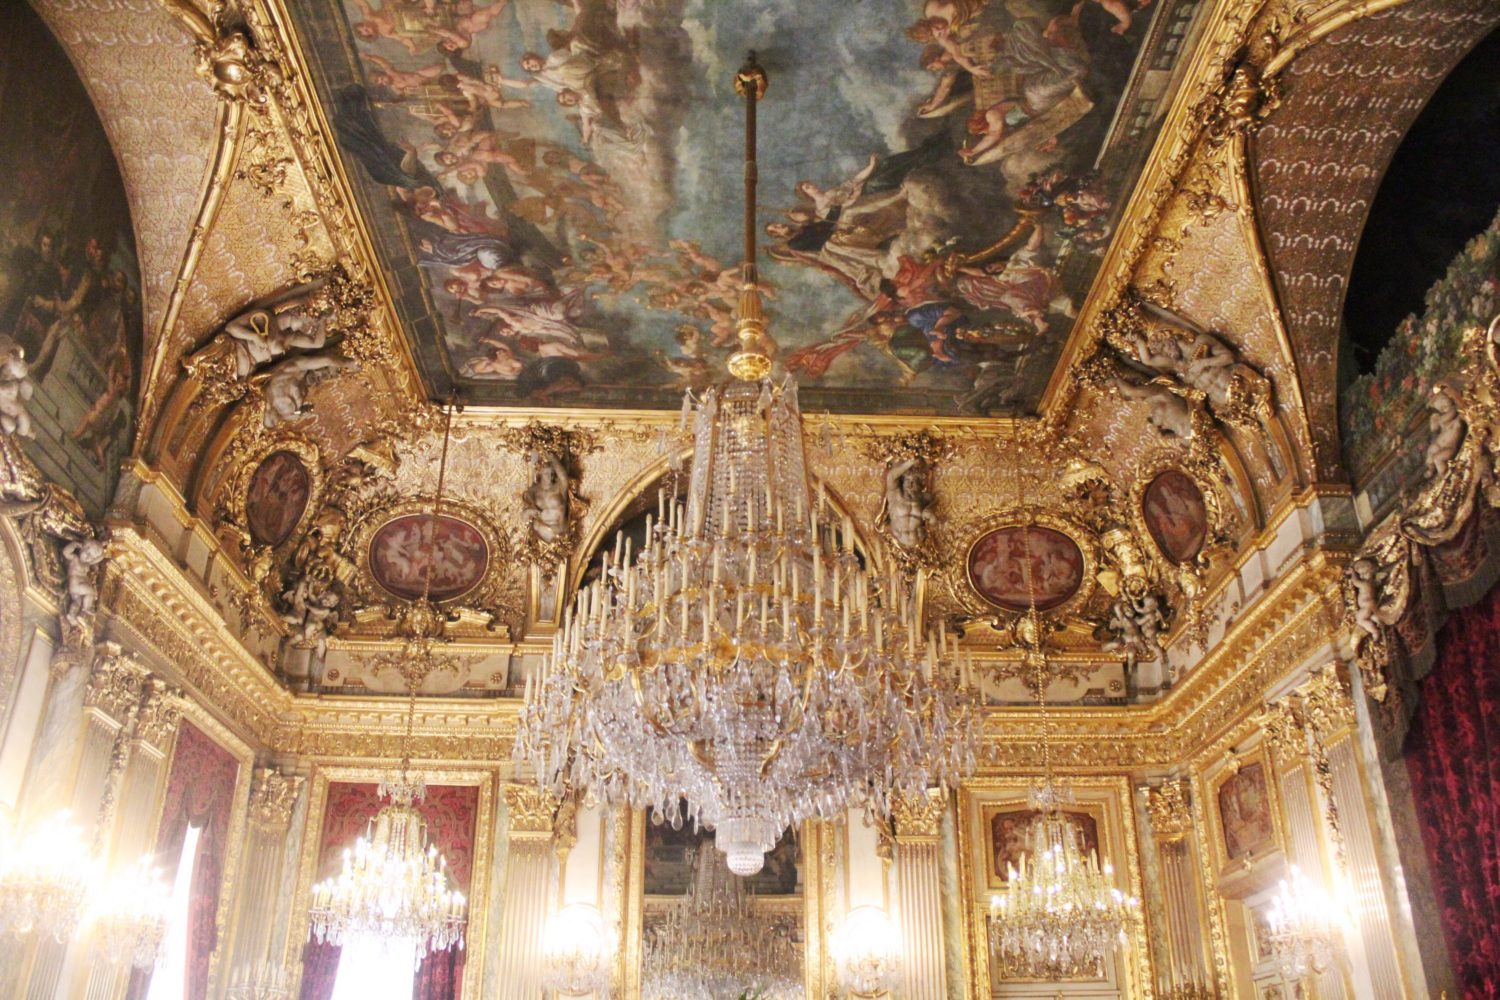 The Napoleon III Apartments at The Louvre